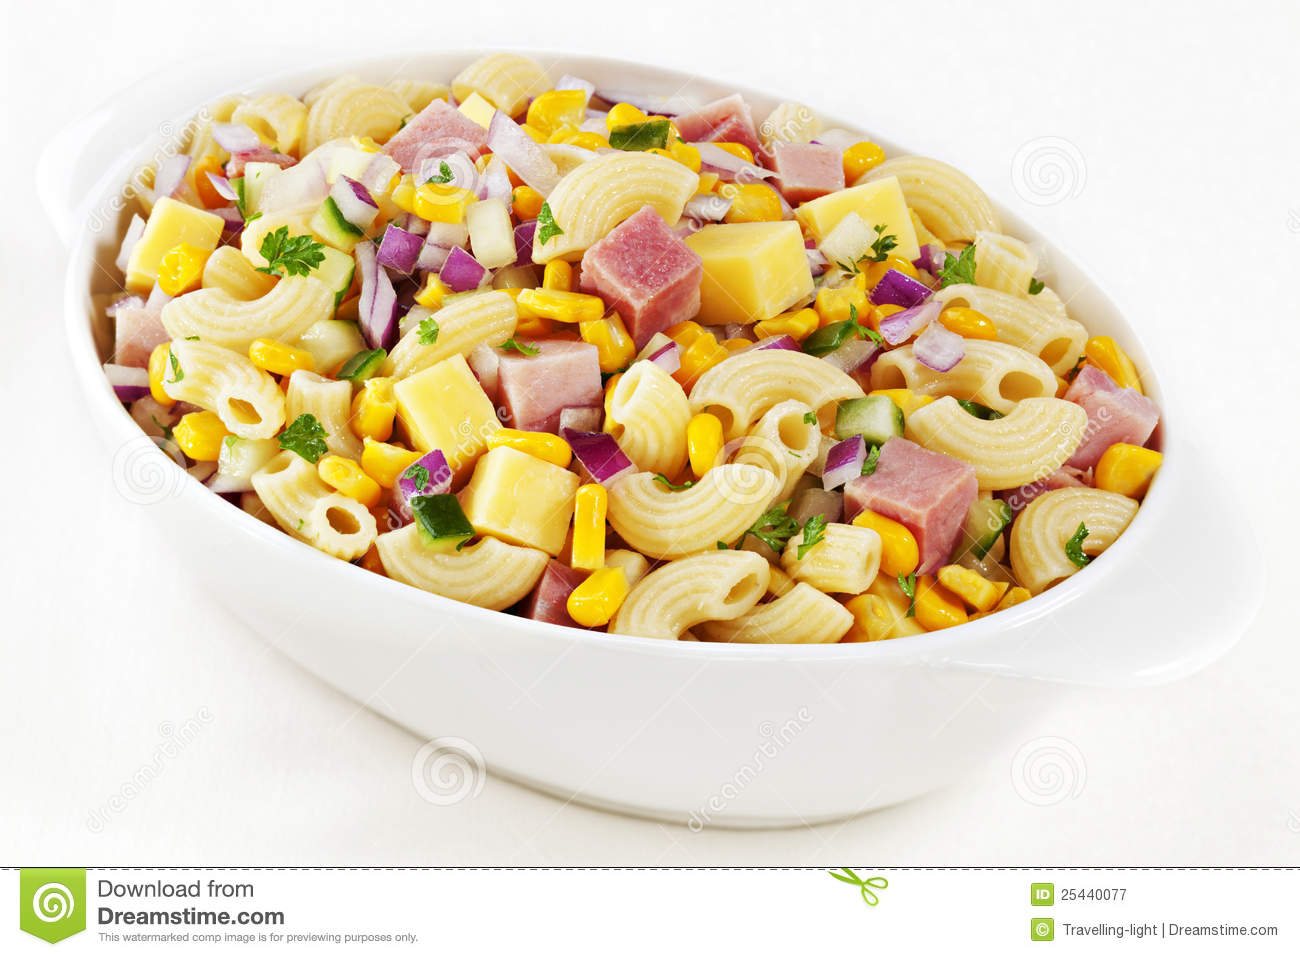 Macaroni salad clipart » Clipart Station.